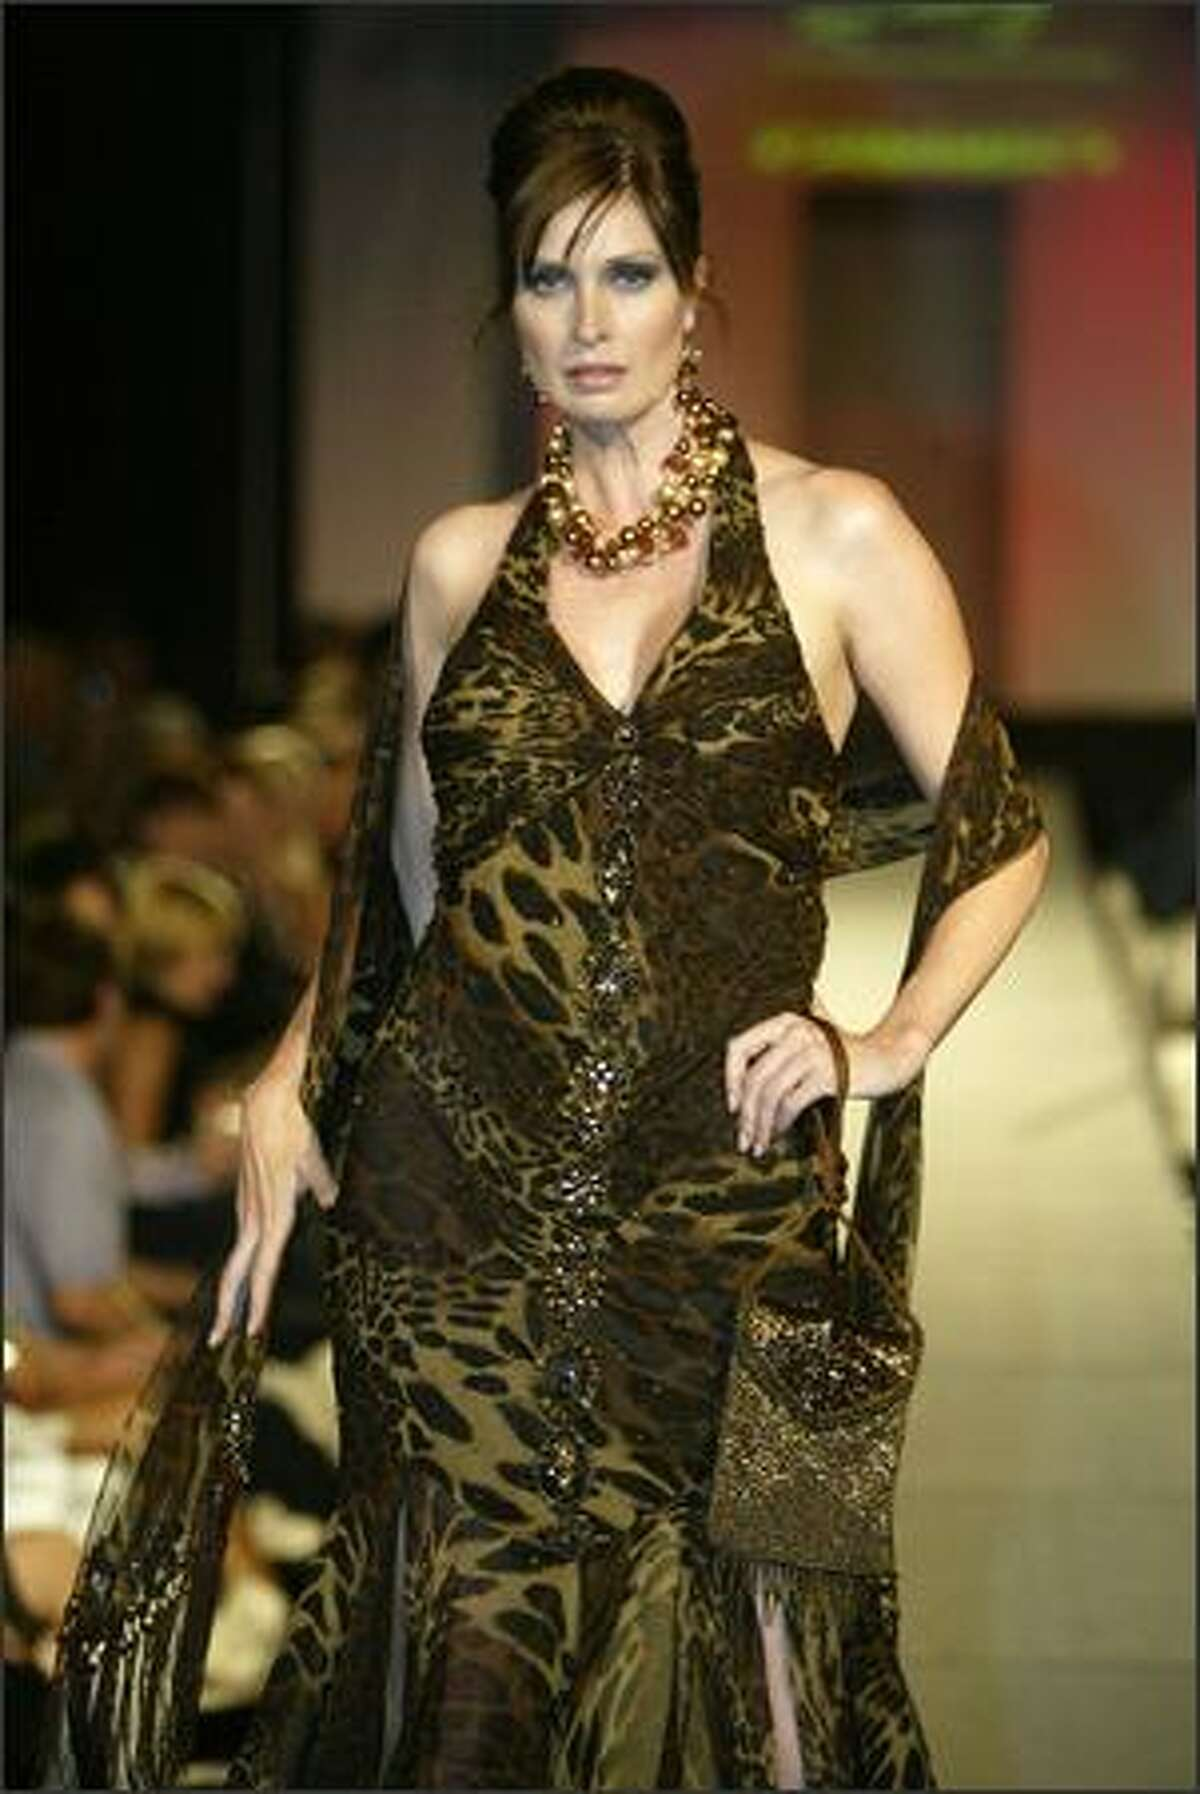 A model shows an outfit from Karan Dannenberg Clothier: Sue Wong Leopard dress, Sue Wong shawl, Susan Marsh copper necklace and shoes by Shoefly at the fall 2006 Fashion First runway show, held at the Premier night club in Sodo on Thursday, Aug. 3.